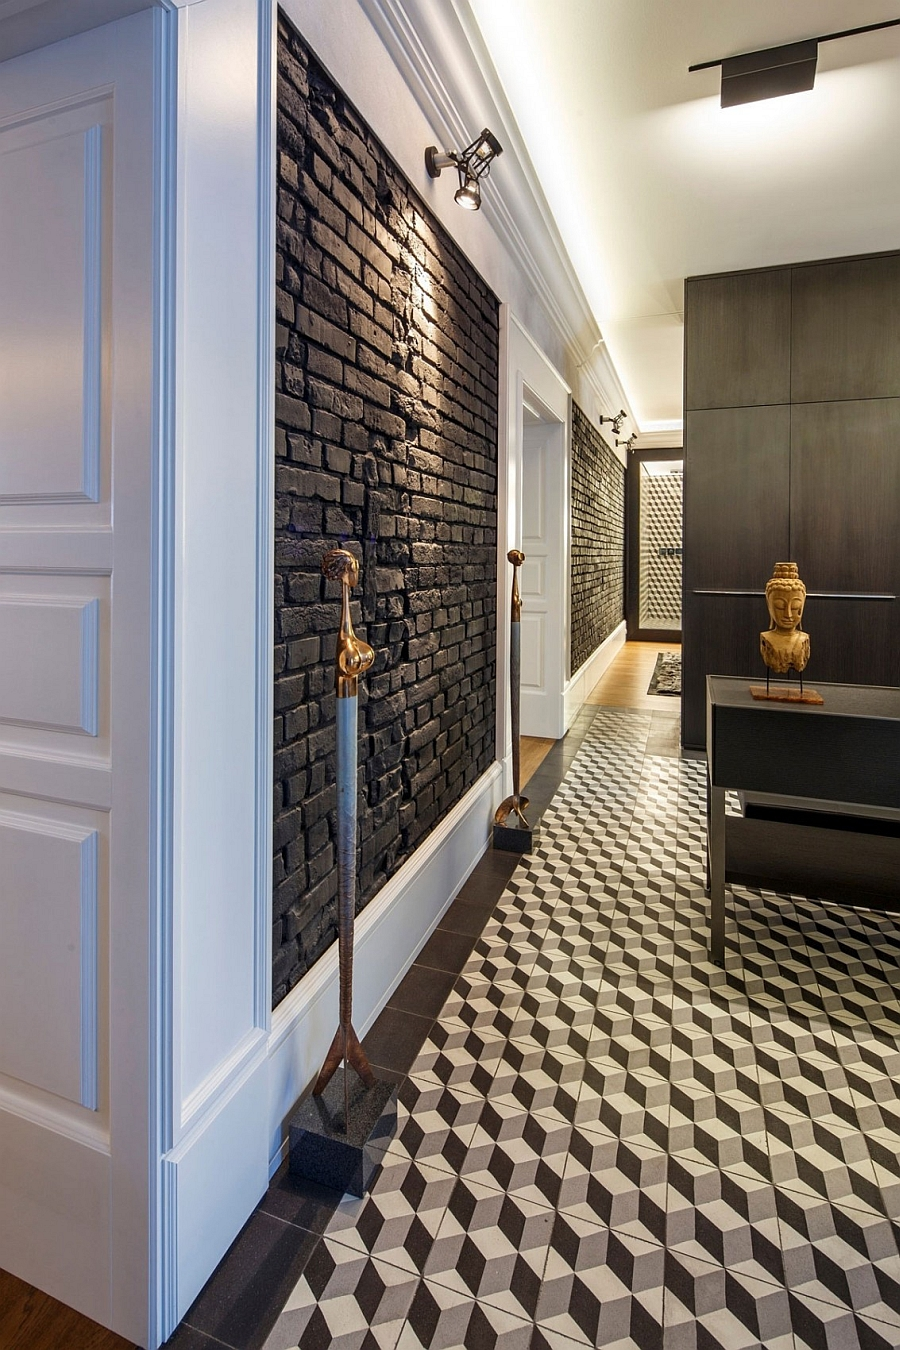 Accent lighting puts focus on the dark brick walls